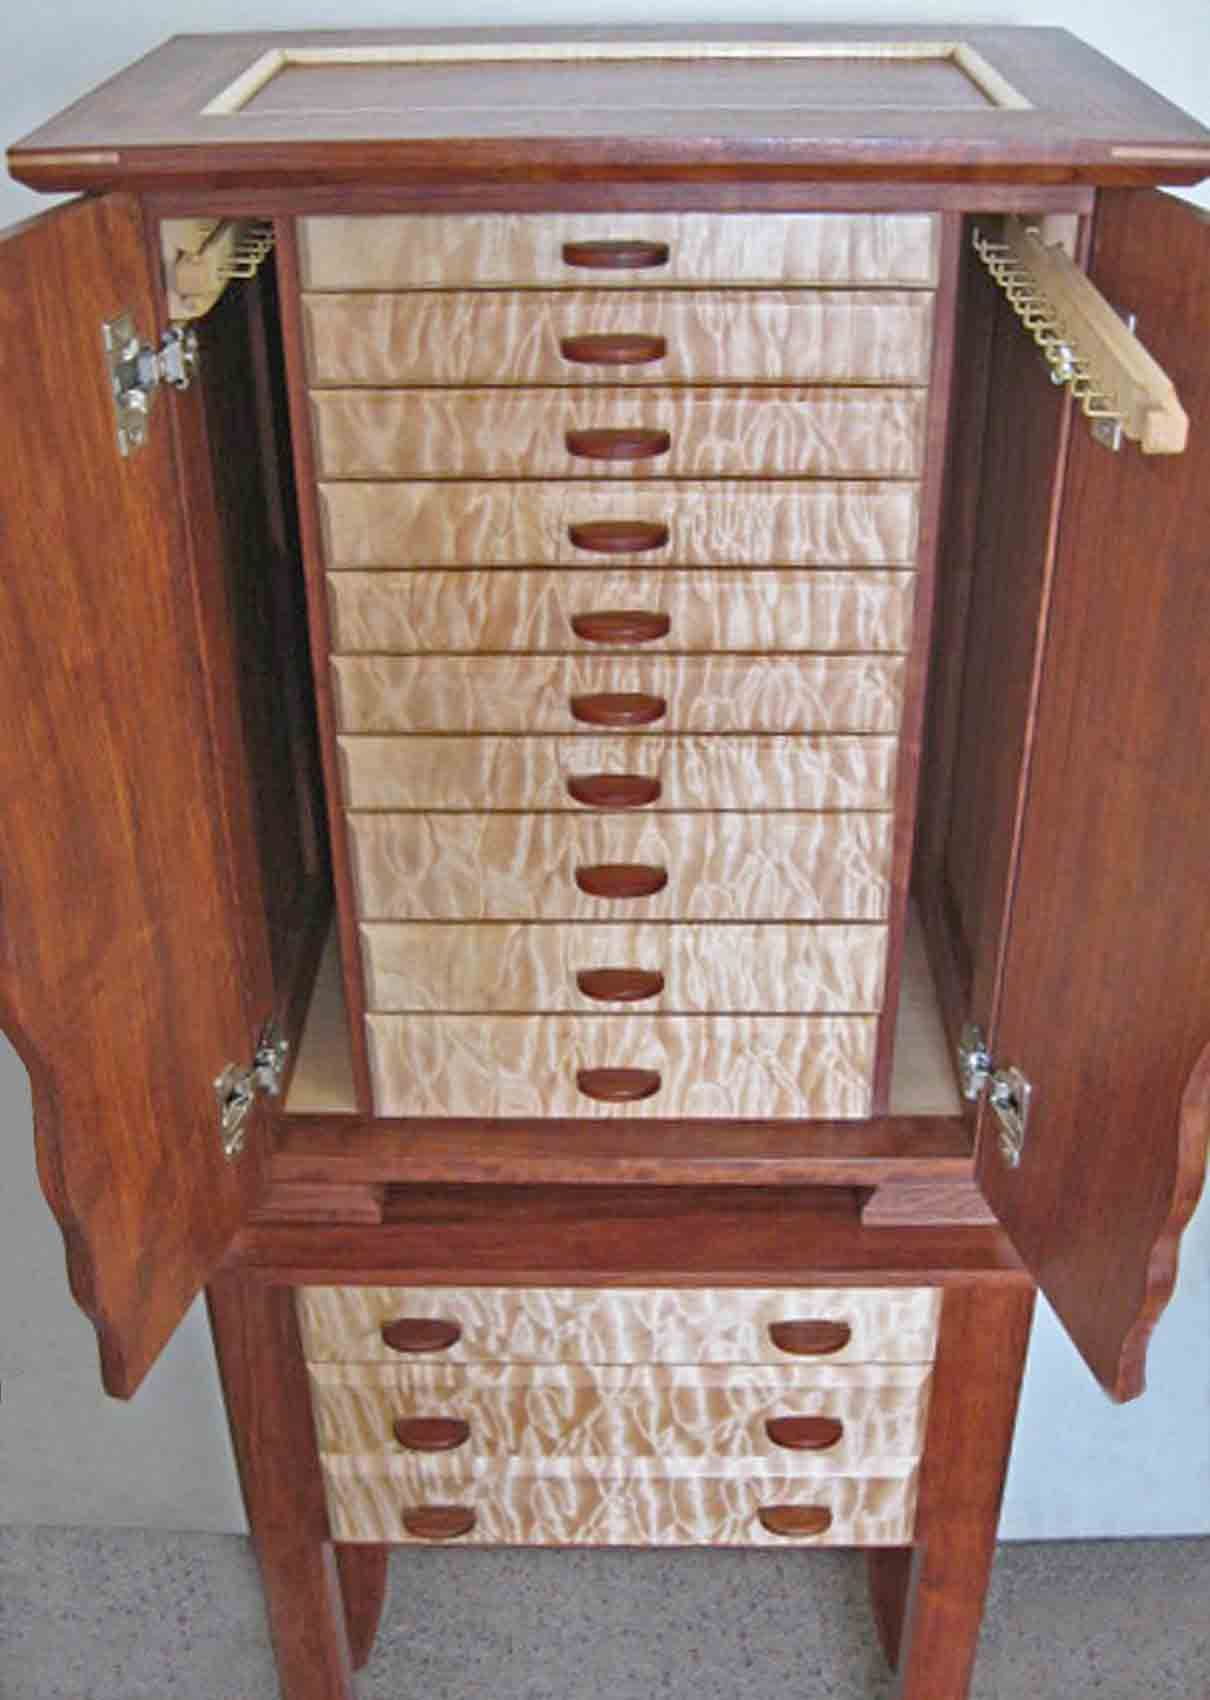 Necklace Holder Beautiful Handmade Armoire Jewelry Box of Exotic Woods - Necklace Holder Beautiful Handmade Armoire Jewelry Box Of Exotic